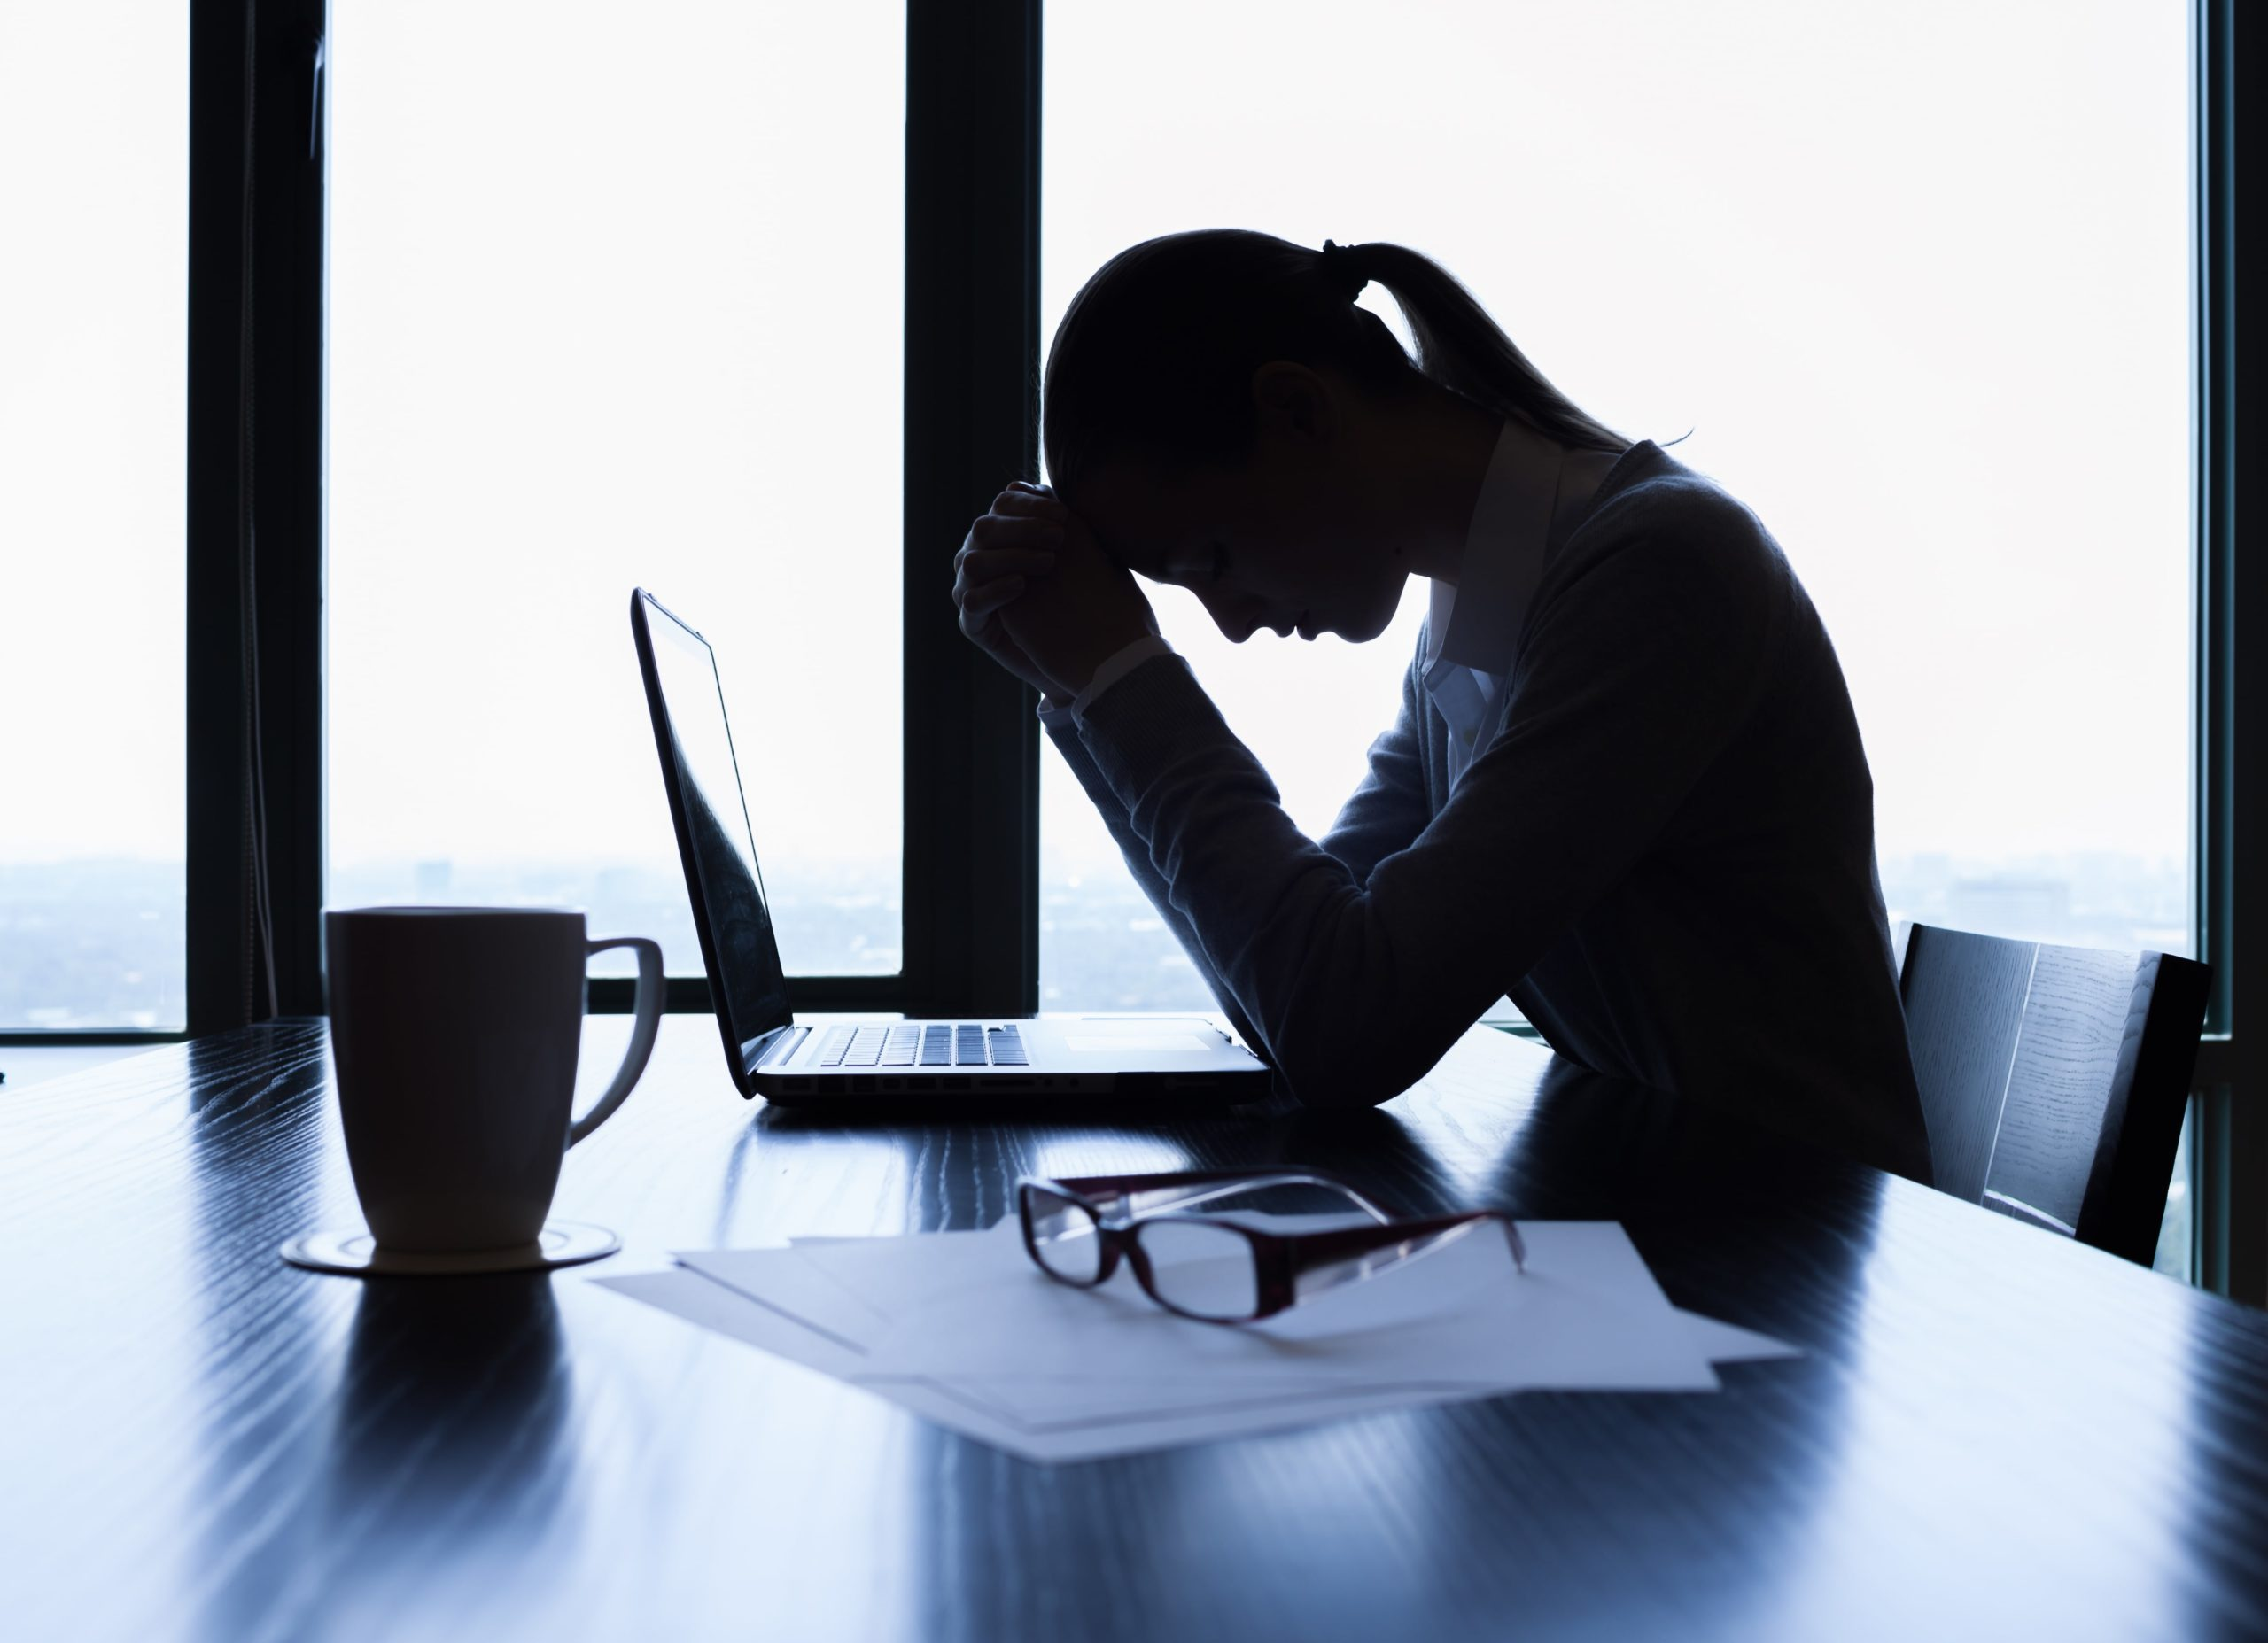 Woman on a computer experiencing headaches and fatigue, potential side effects of carbidopa levodopa